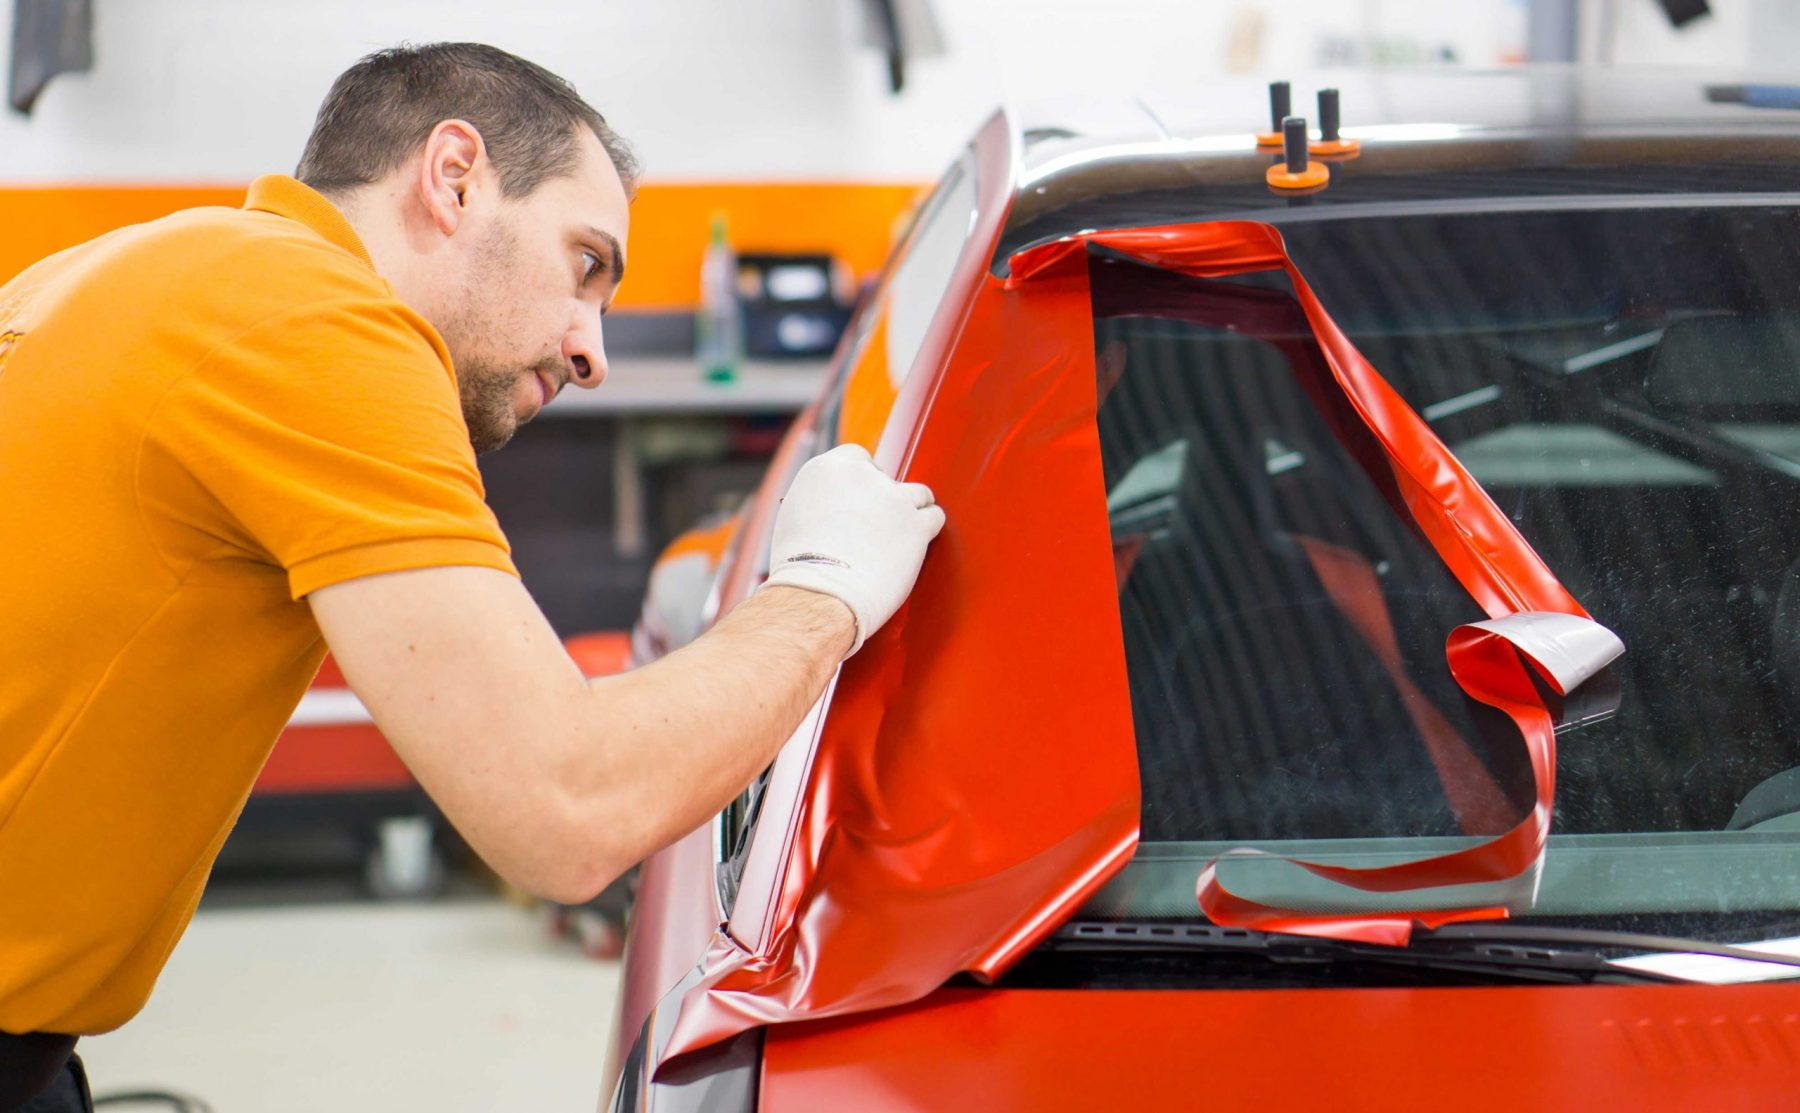 Vehicle wrap being put on a red car